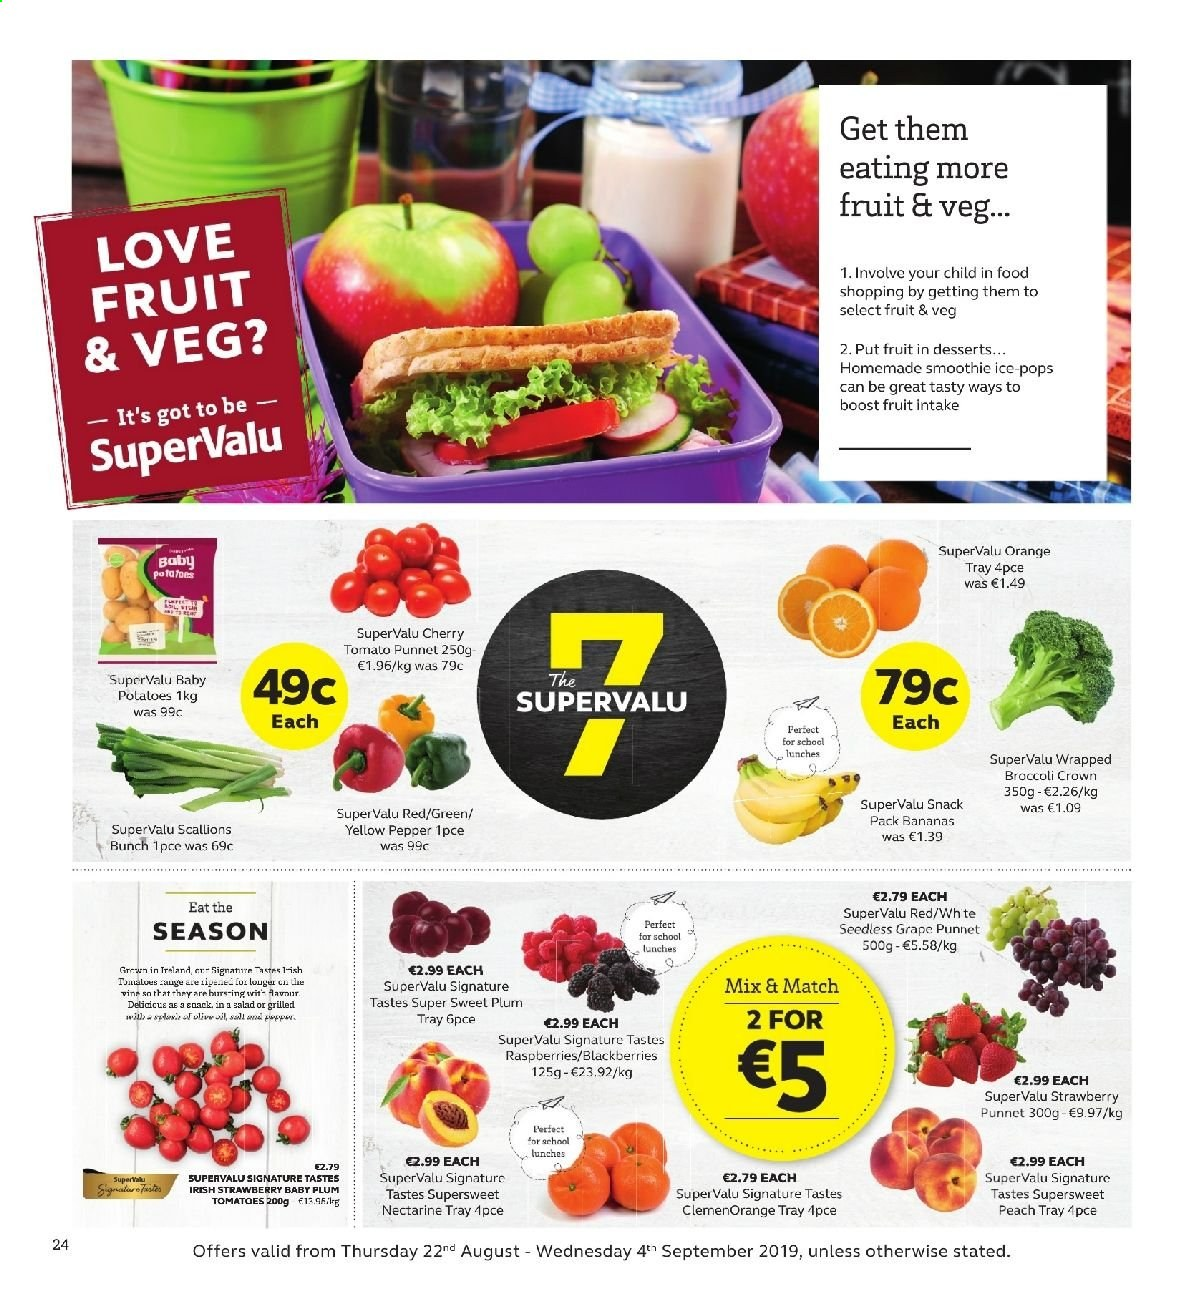 SuperValu offer  - 22.8.2019 - 4.9.2019 - Sales products - blackberries, raspberries, broccoli, tomatoes, salad, bananas, nectarines, orange, snack, pepper, smoothie, Boost. Page 24.